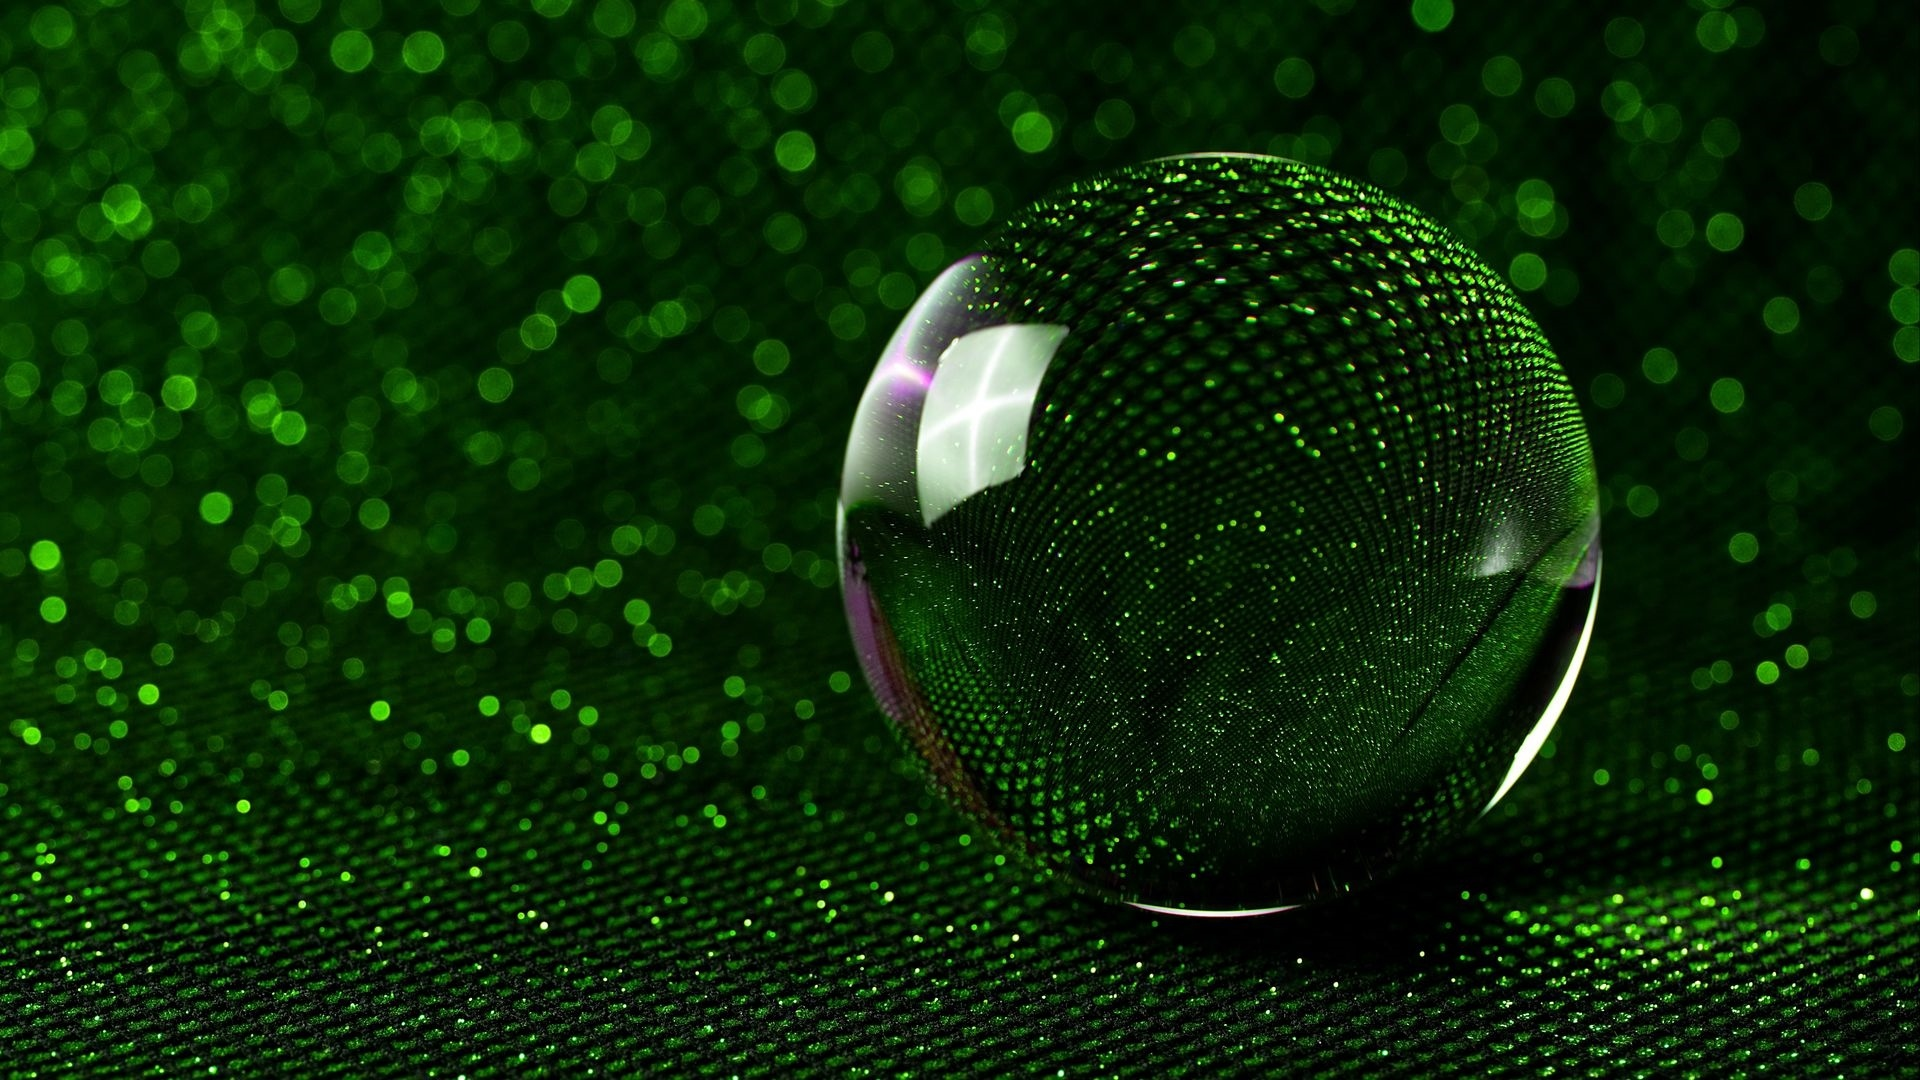 Ball Glass Wallpaper theme